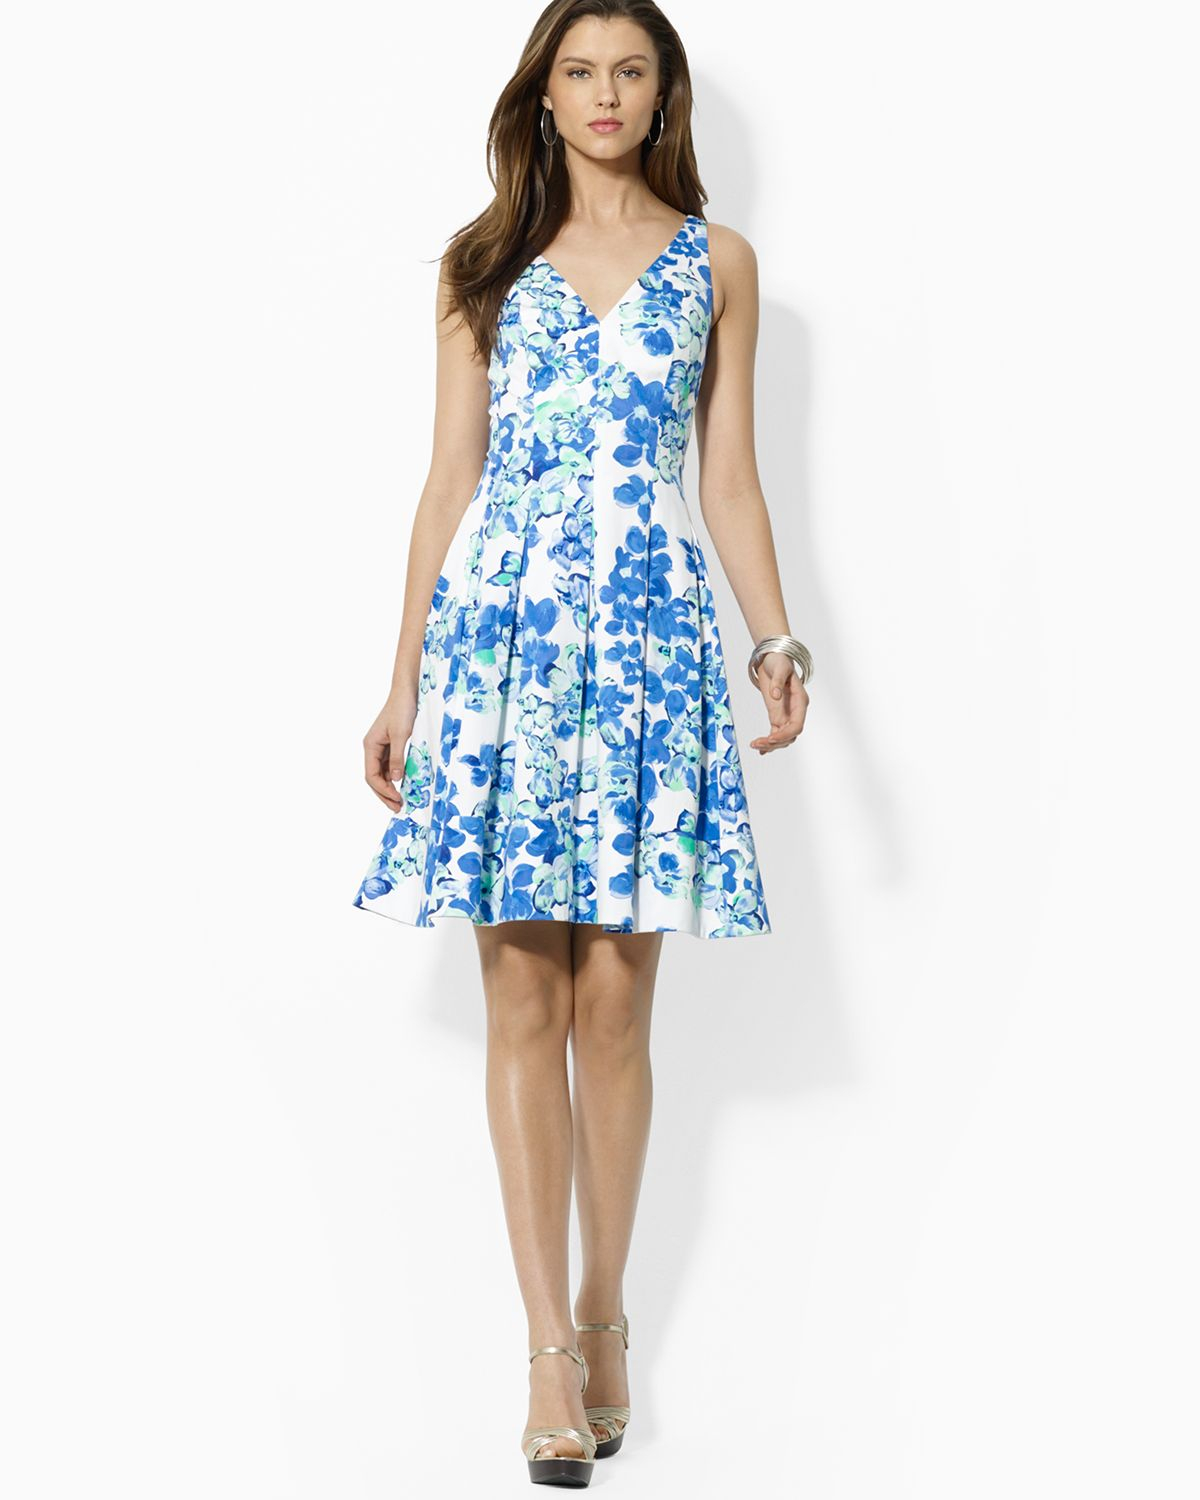 Joe Fresh Dresses 2014